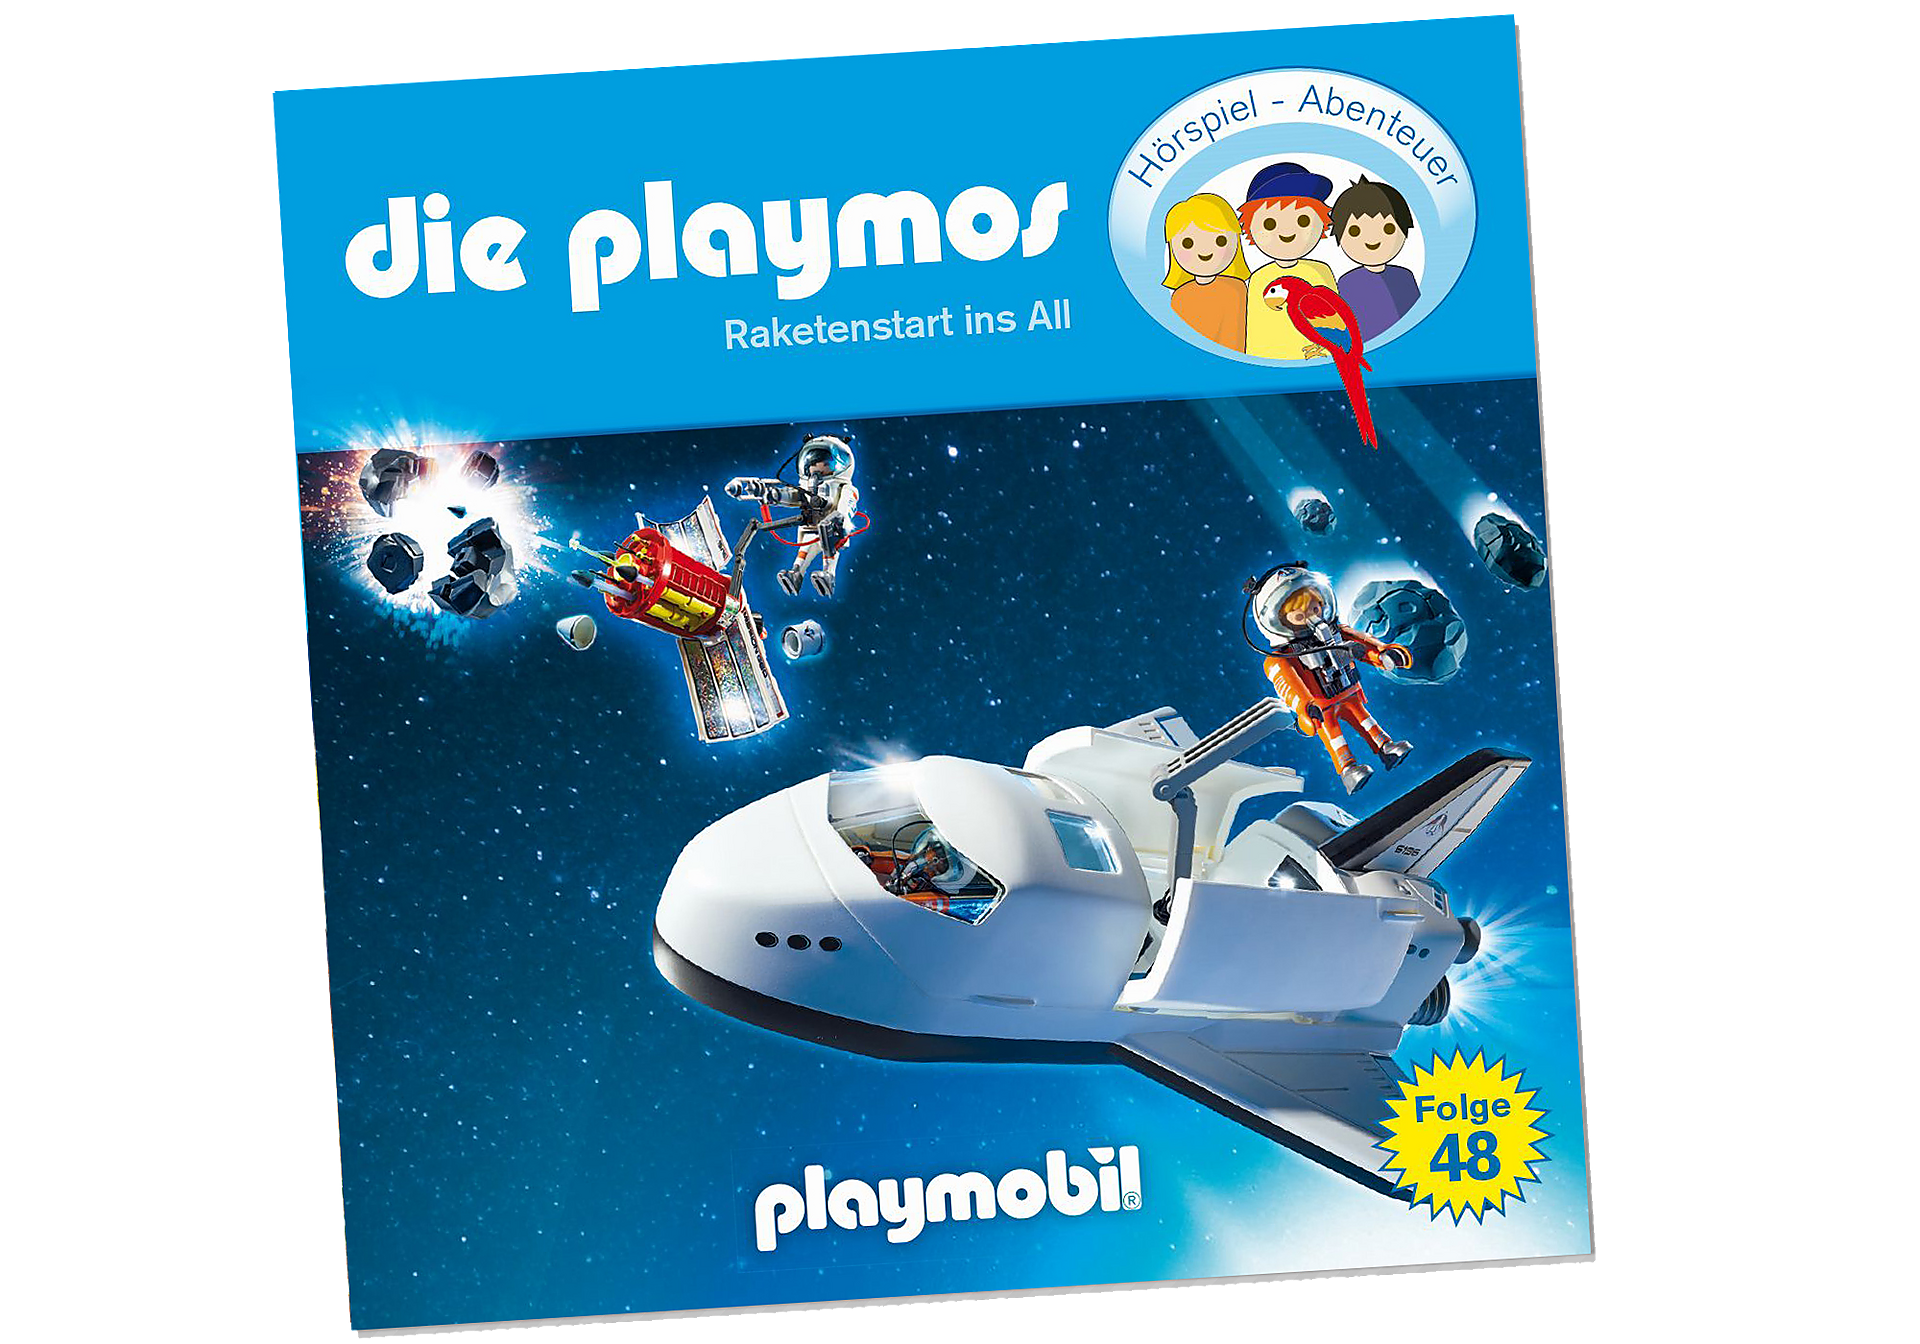 http://media.playmobil.com/i/playmobil/80255_product_detail/Aufbruch ins All - Folge 48